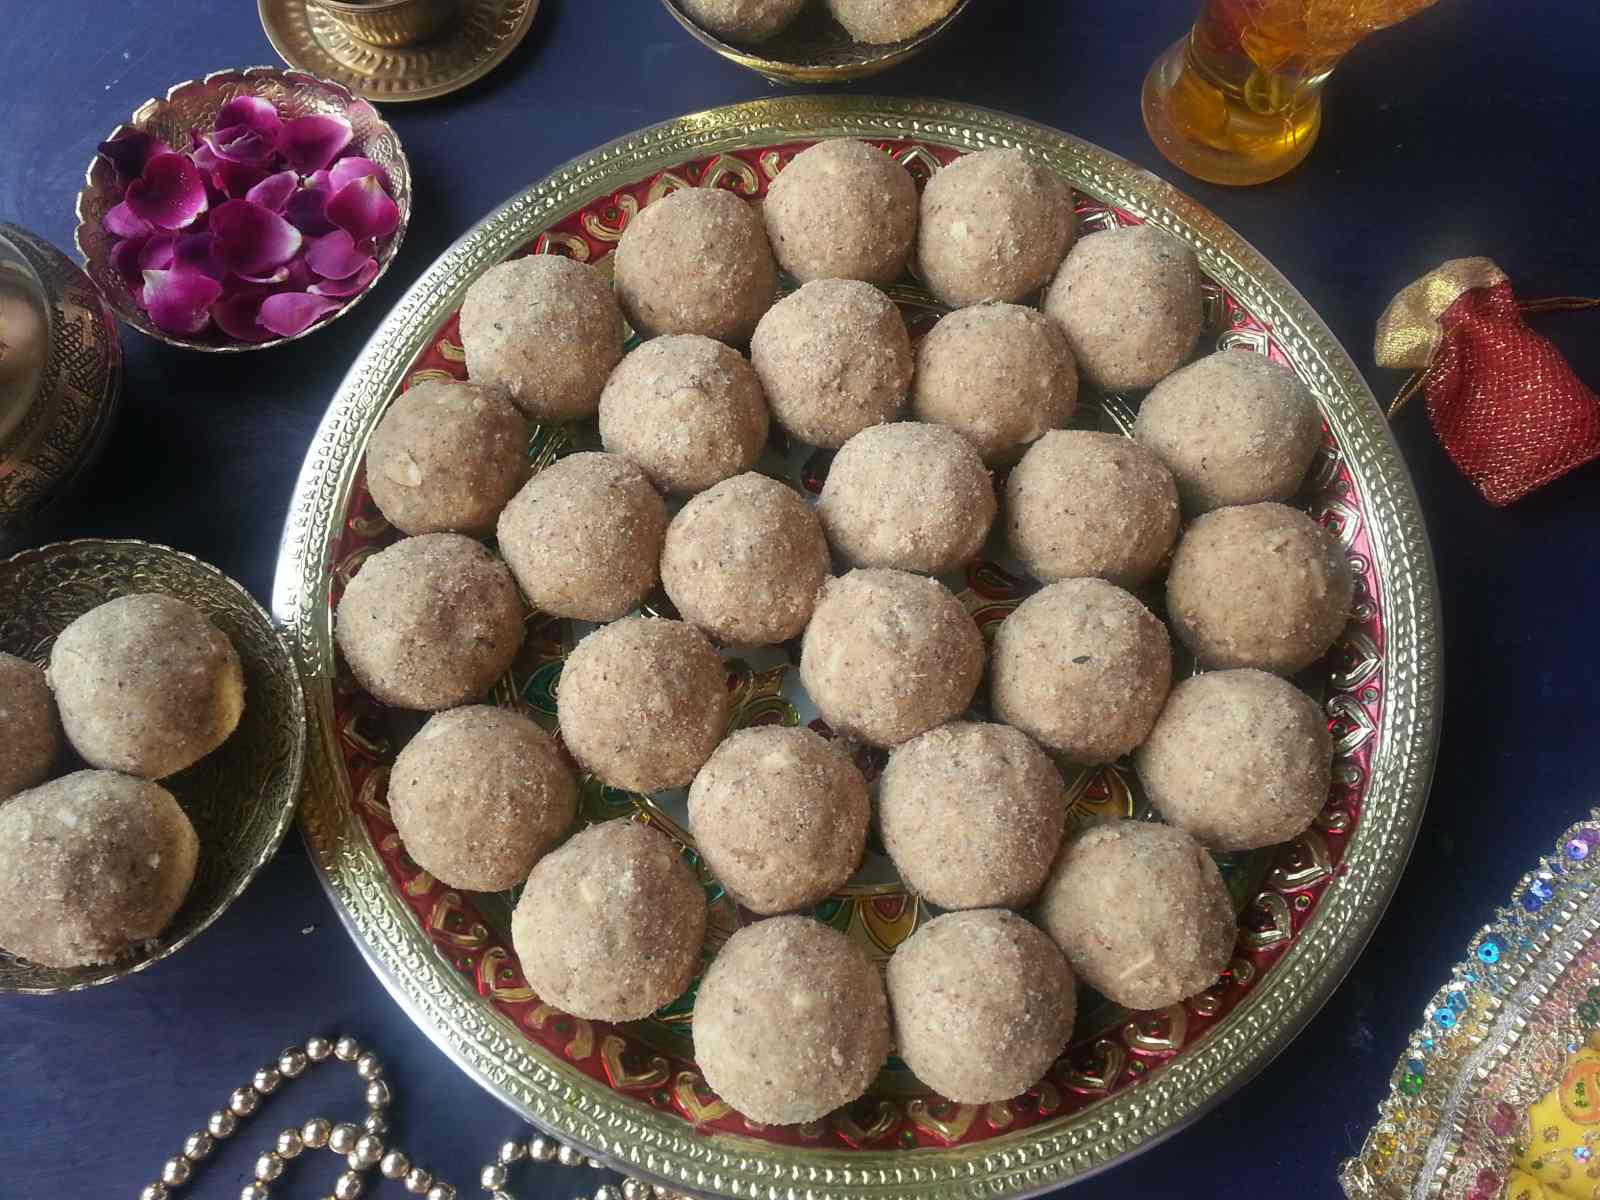 Maharashtrian dinkache ladoo recipe whole wheat flour truffles with maharashtrian dinkache ladoo recipe whole wheat flour truffles with edible gum dry fruits forumfinder